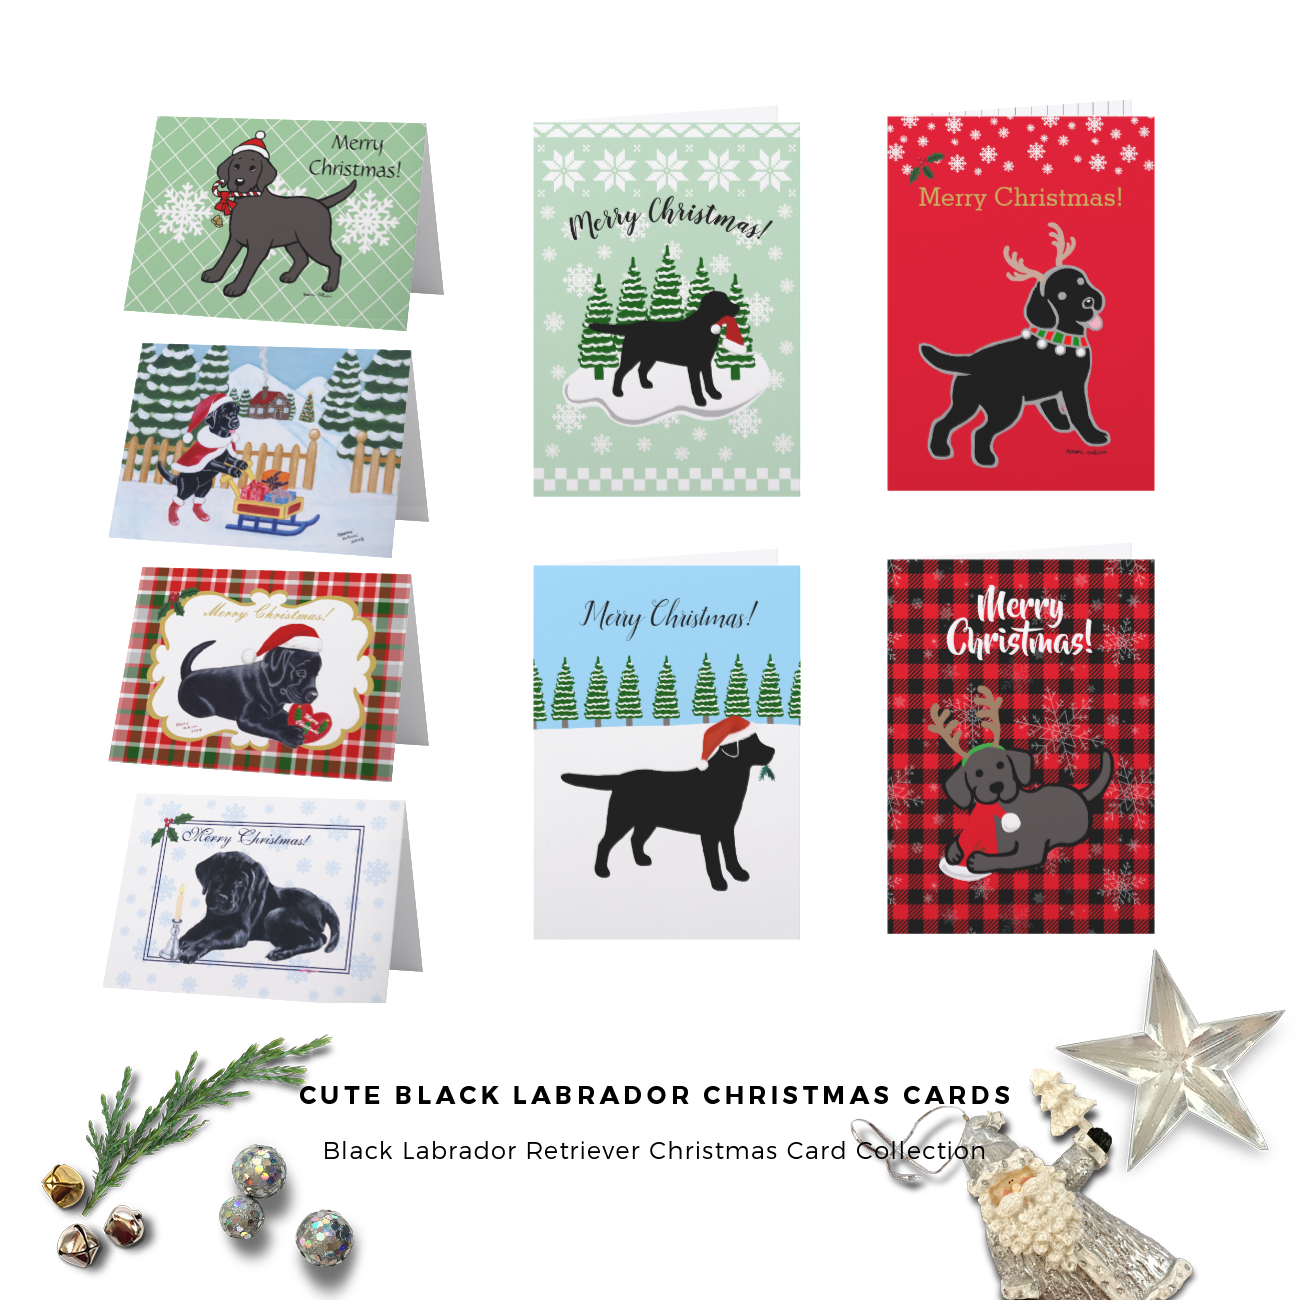 Cute Black Labrador Retriever Christmas Card Collection by HappyLabradors